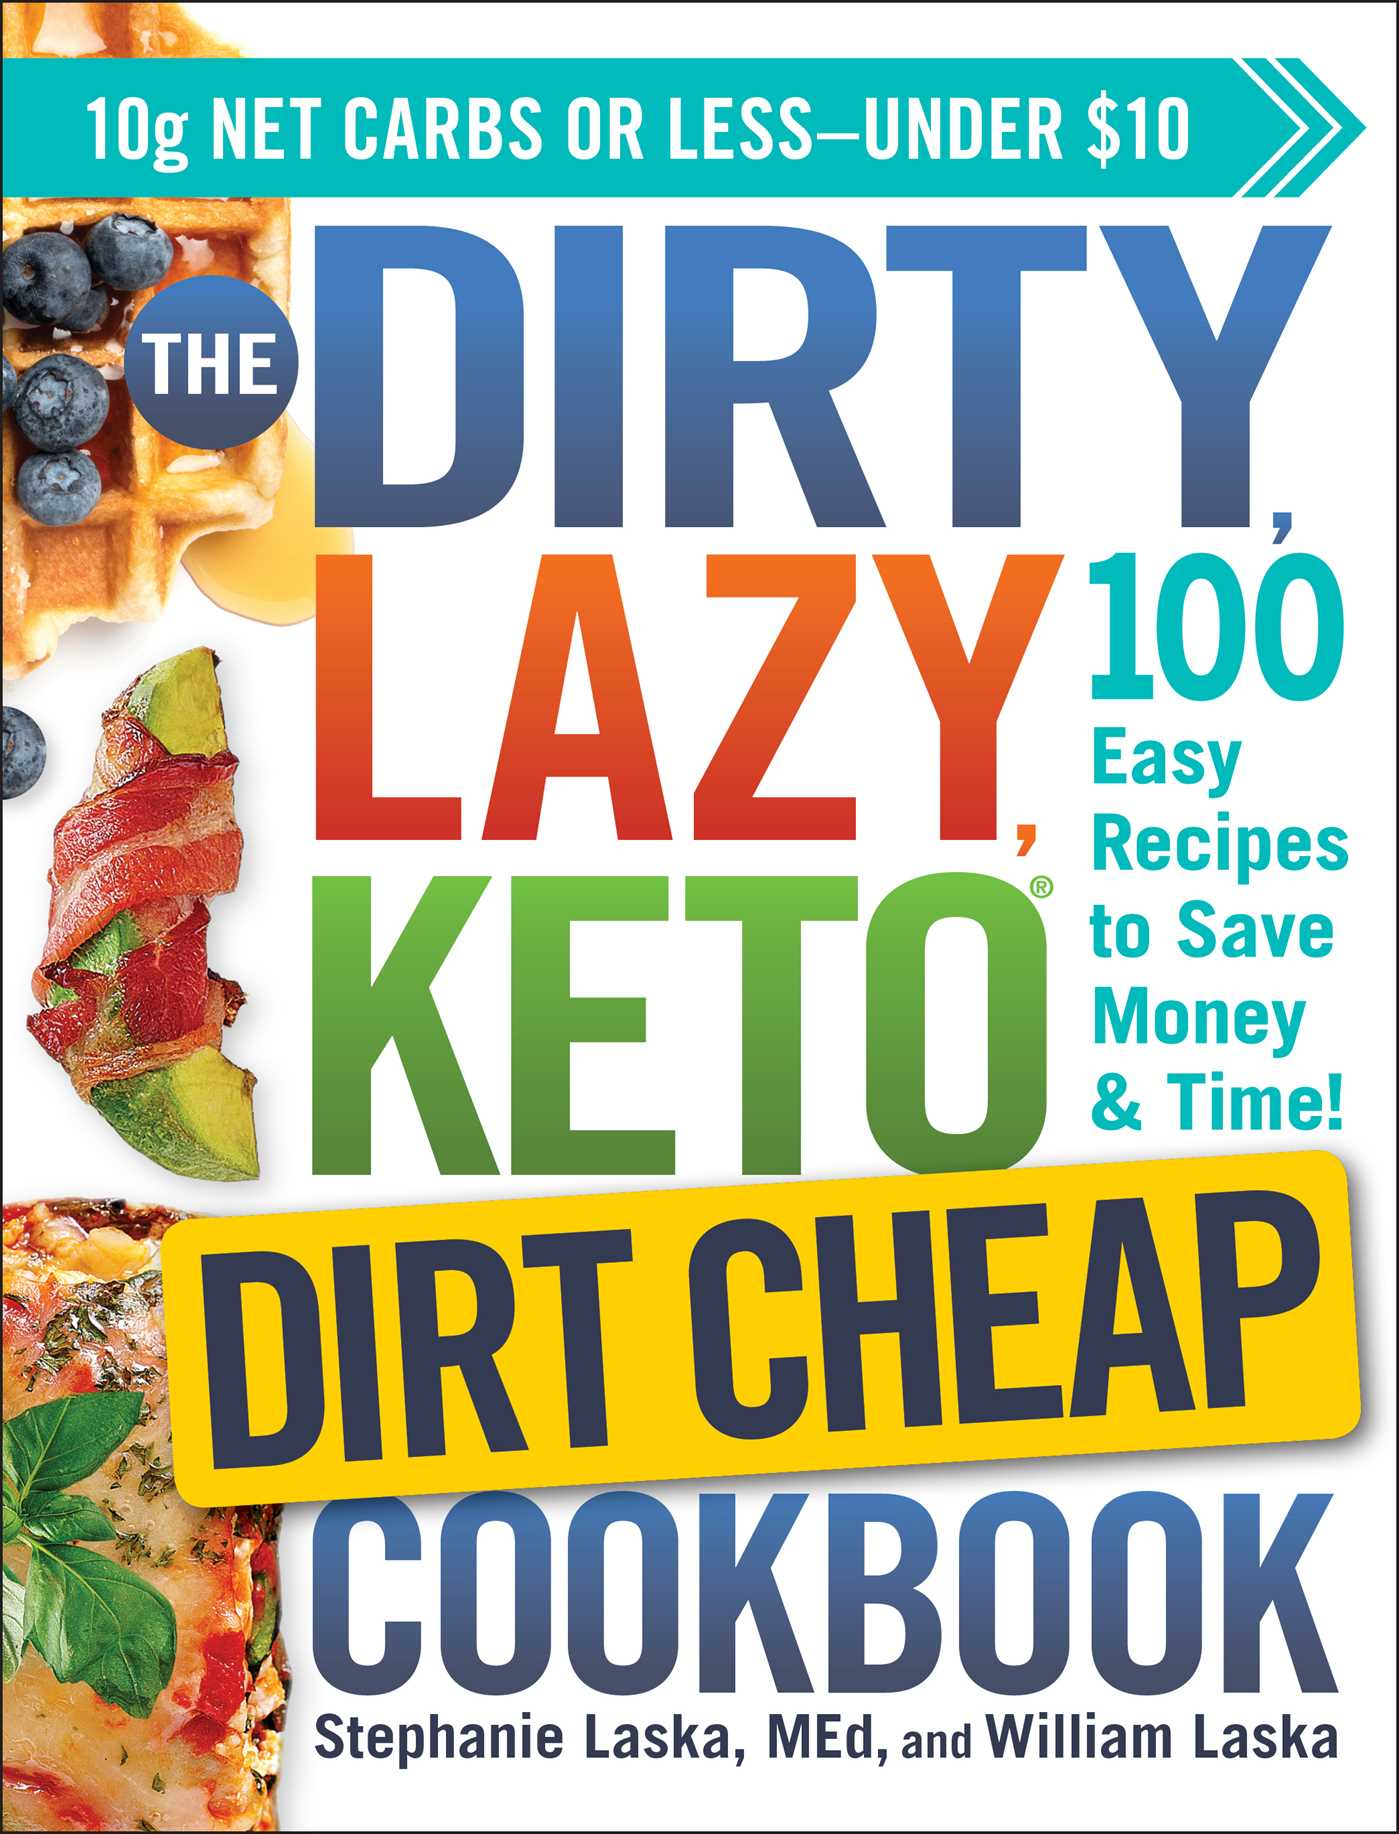 The DIRTY, LAZY, KETO Dirt Cheap Cookbook: 100 Easy Recipes to Save Money Time!